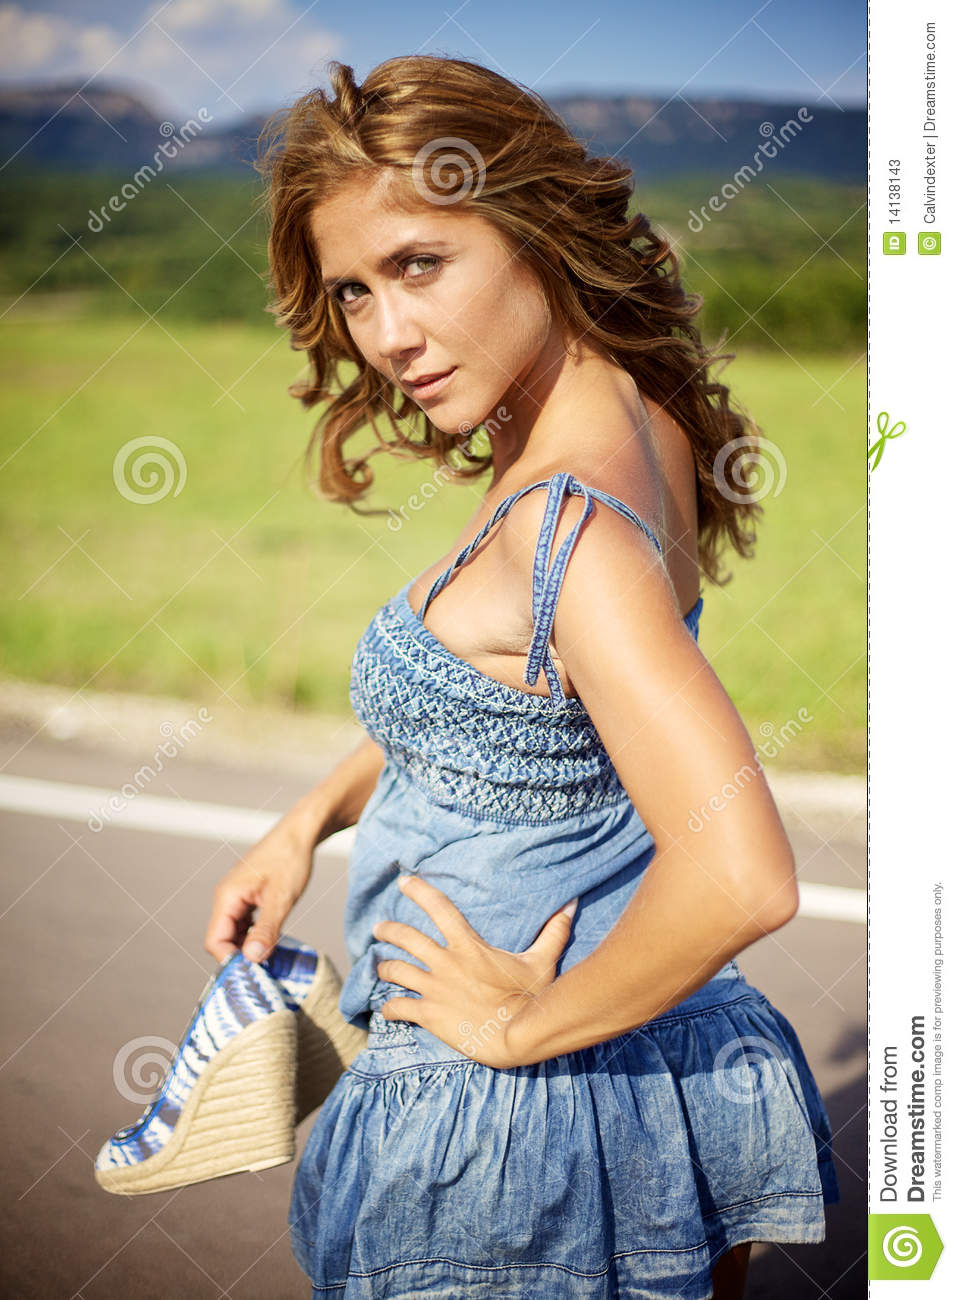 Blond woman on summer day